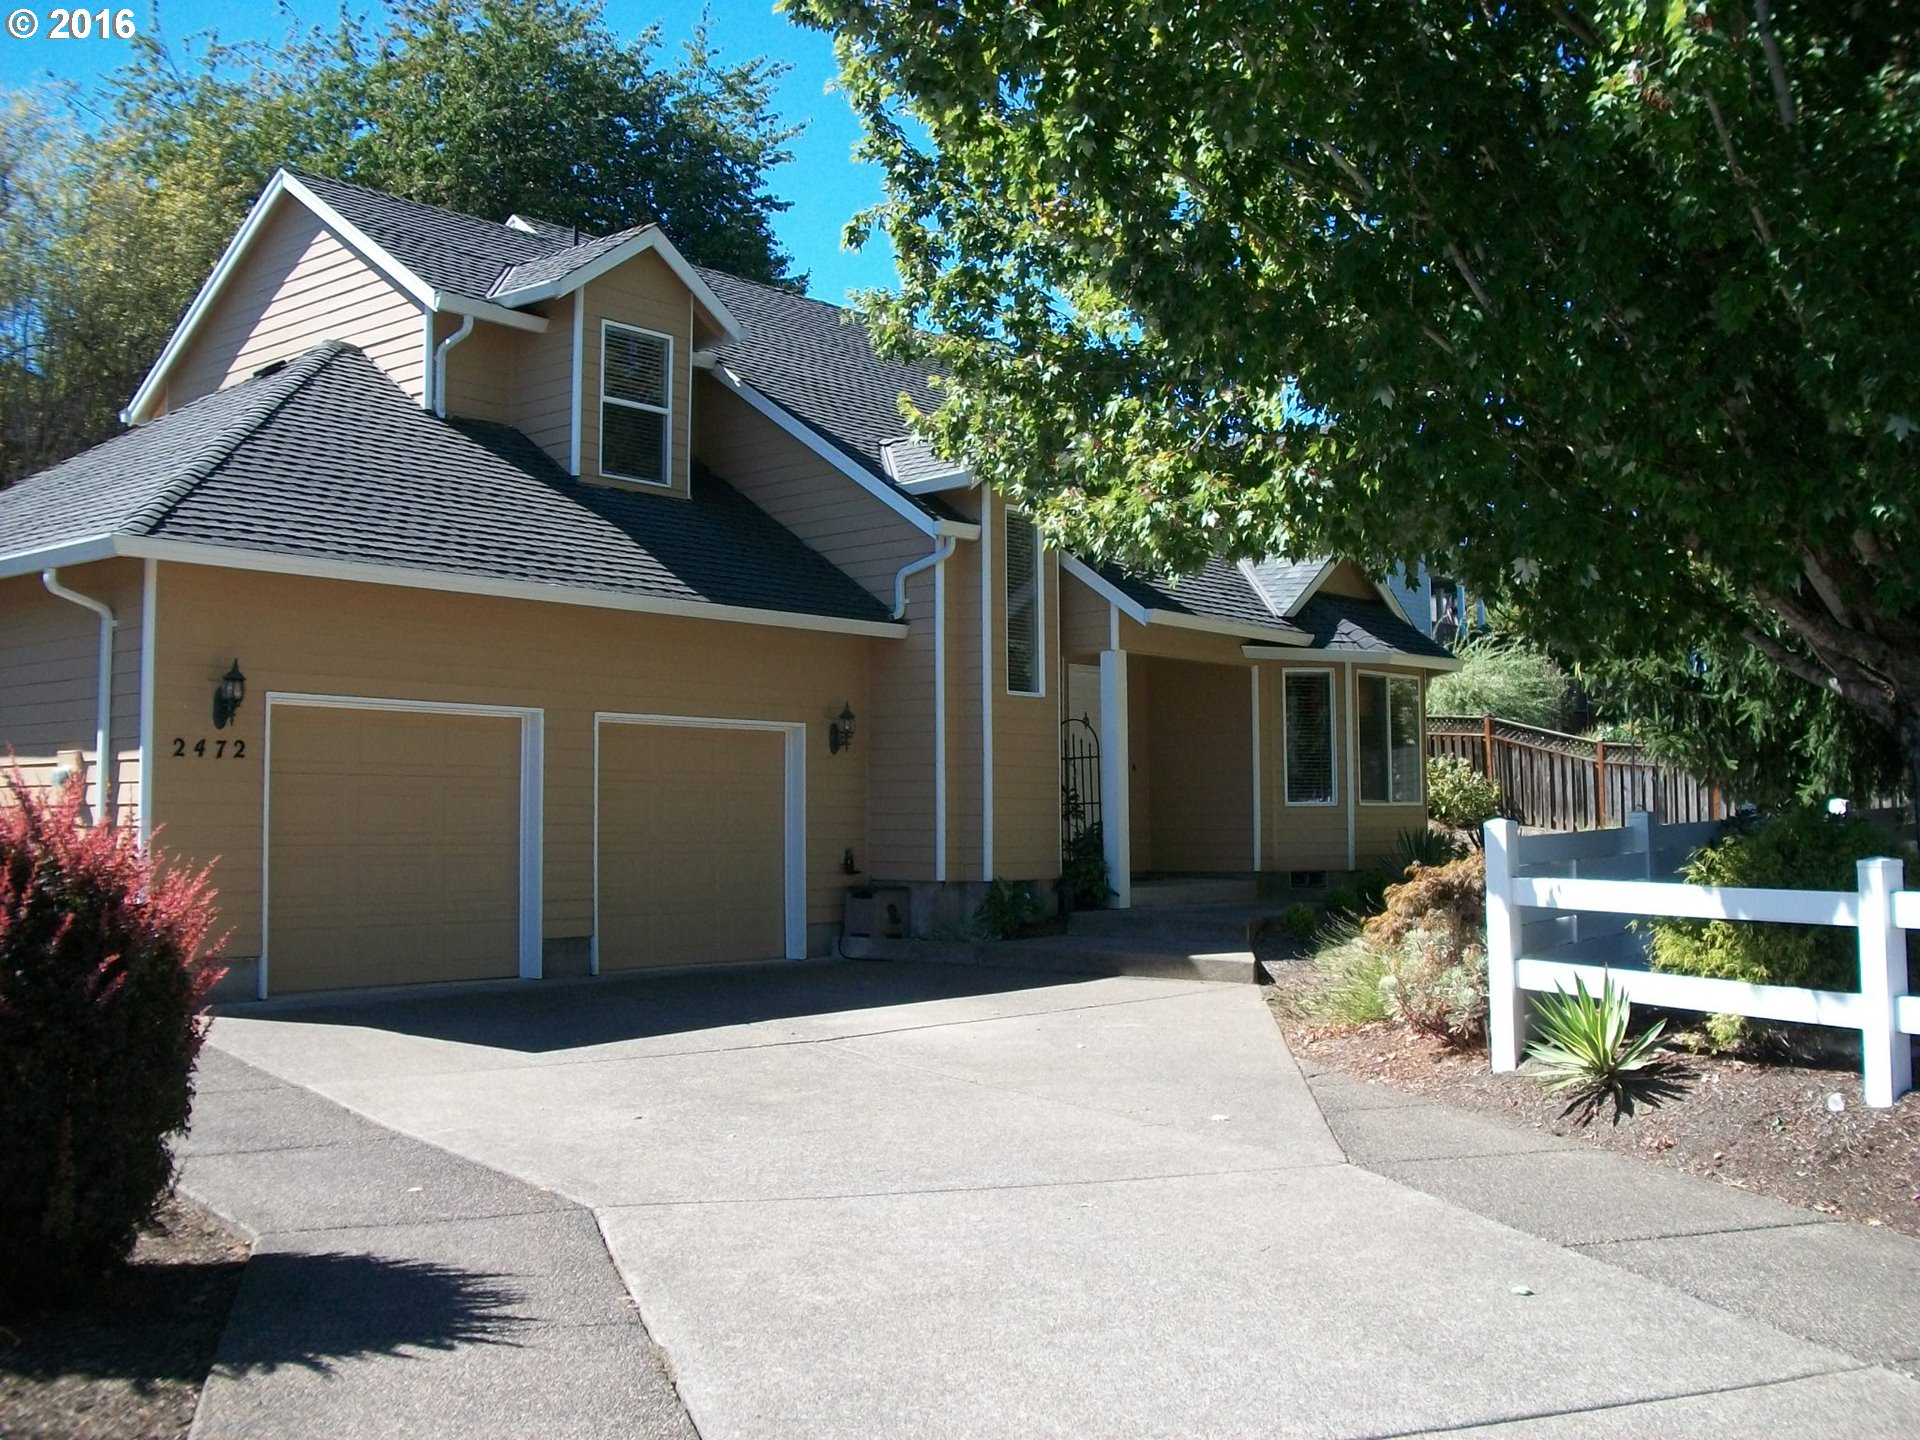 2472 NW ANTHONY CT, Mcminnville OR 97128